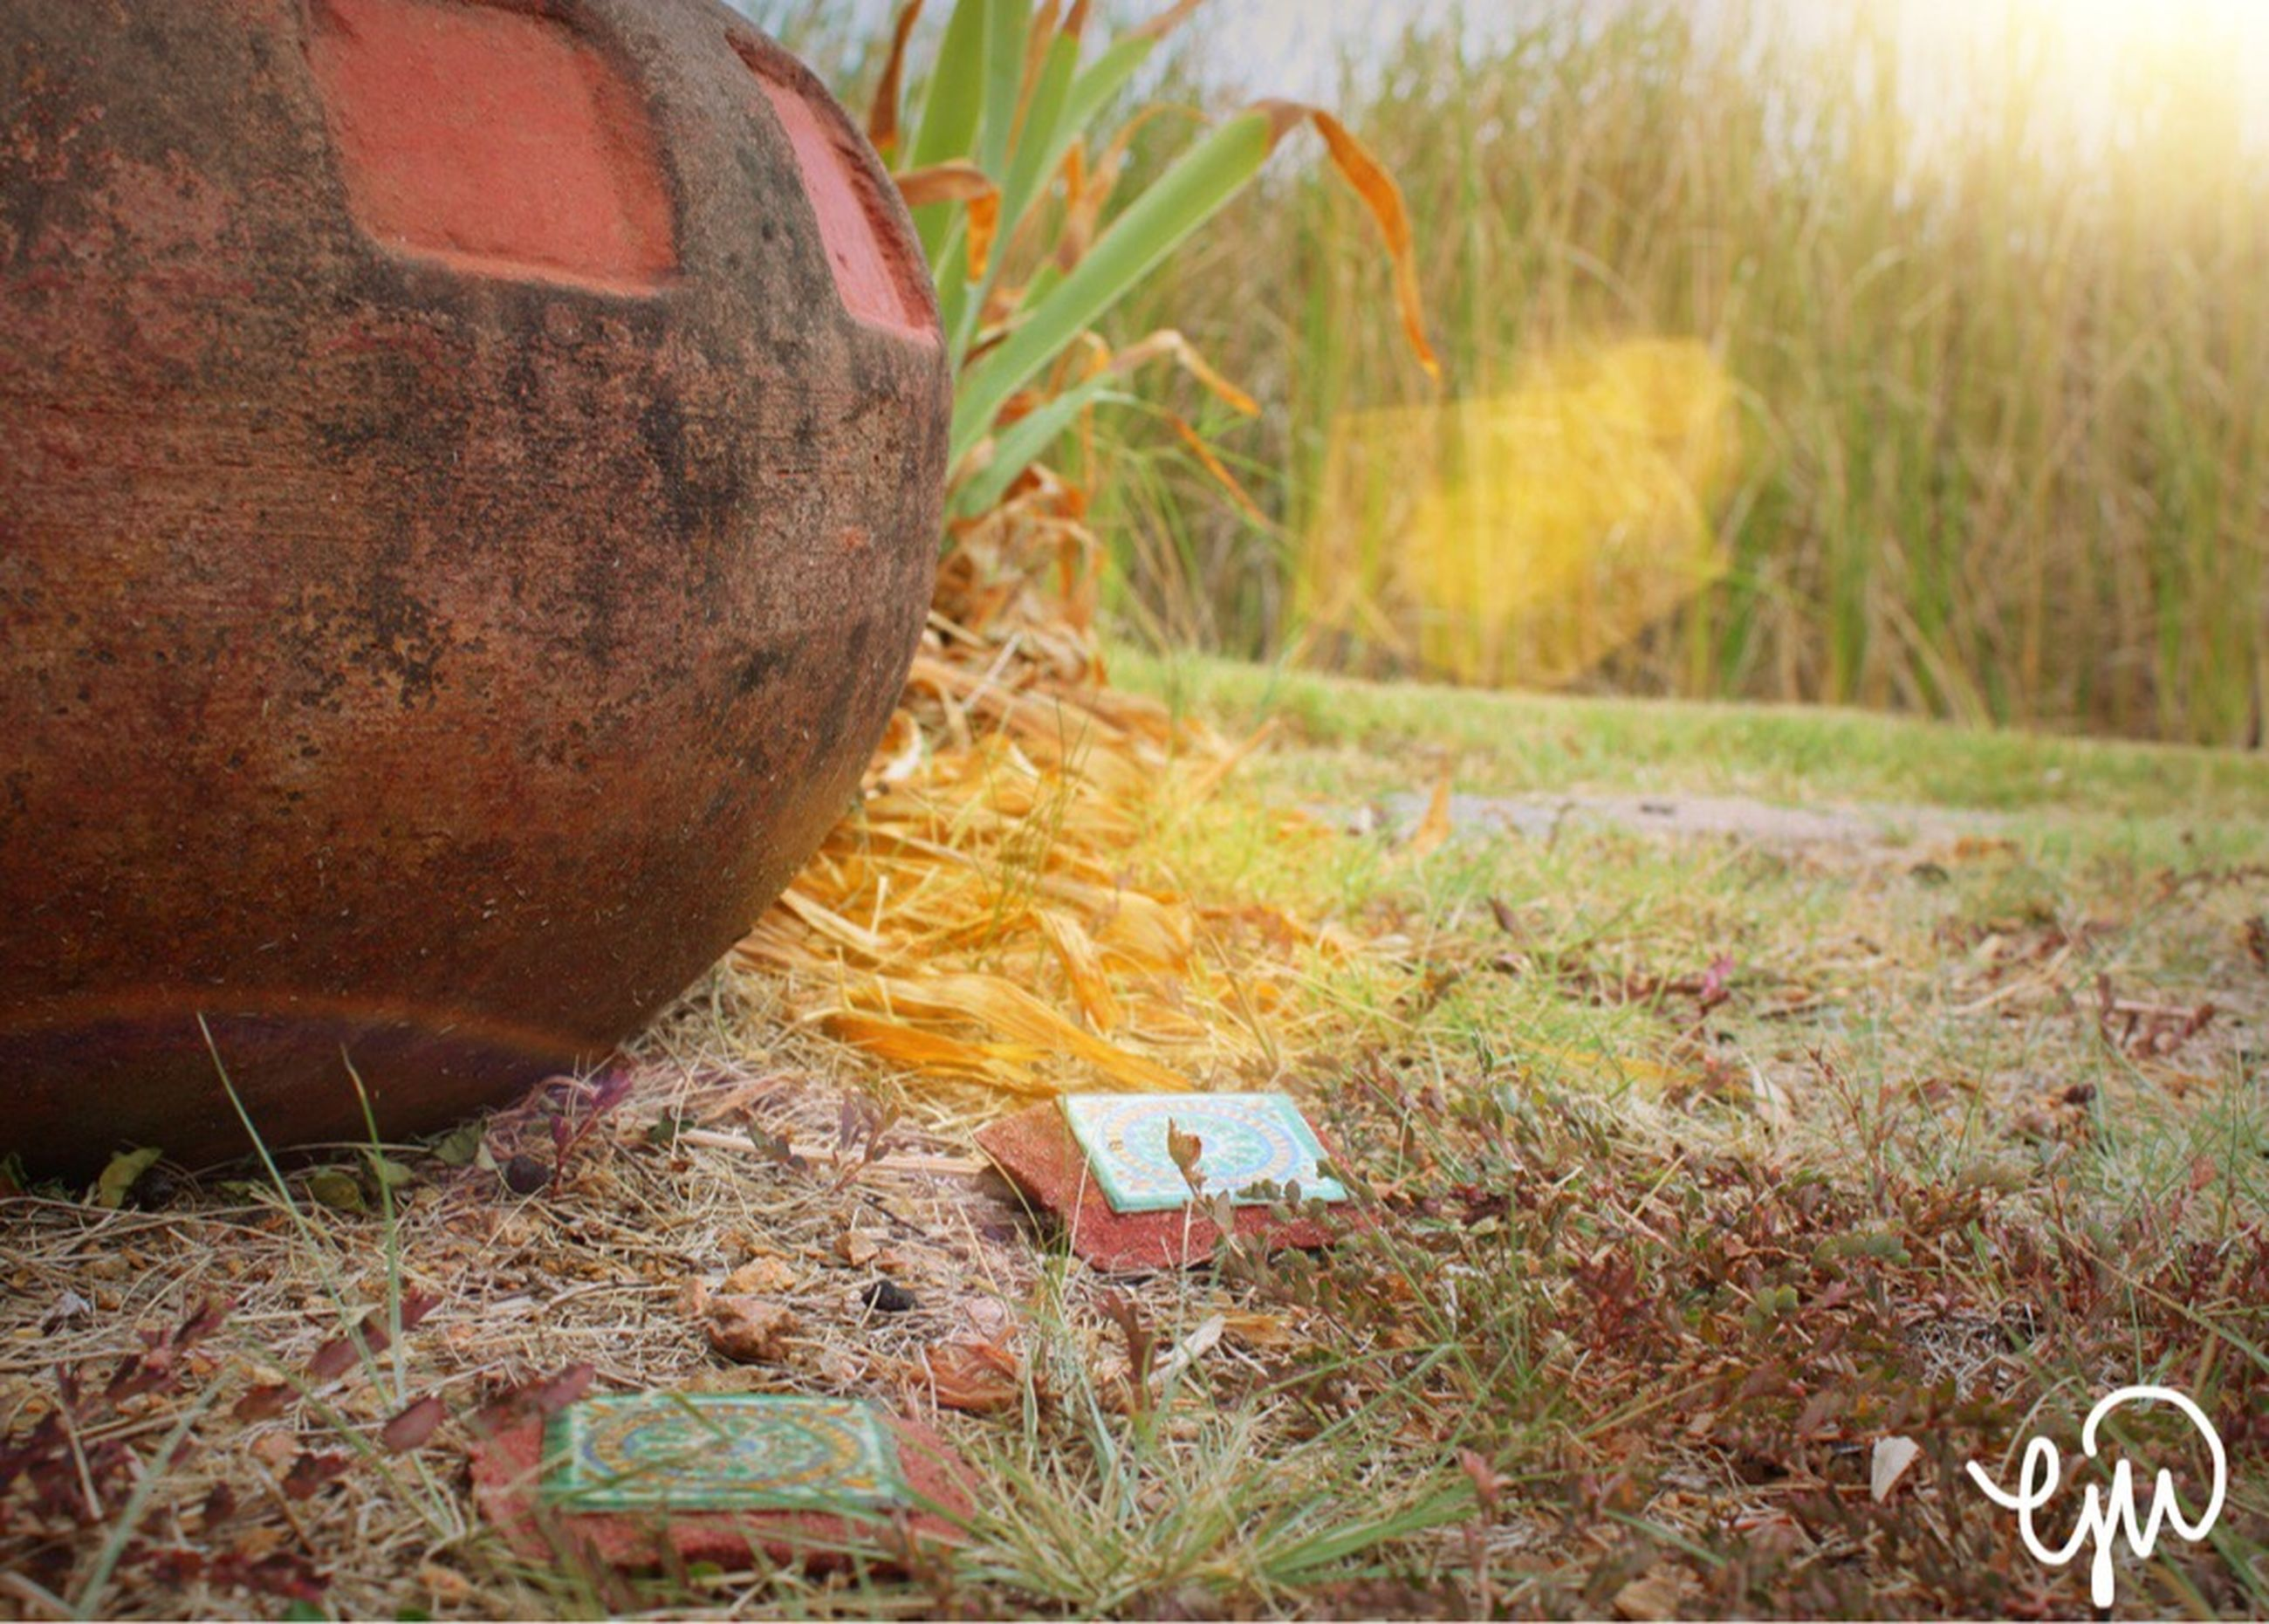 close-up, focus on foreground, brown, day, outdoors, weathered, no people, man made object